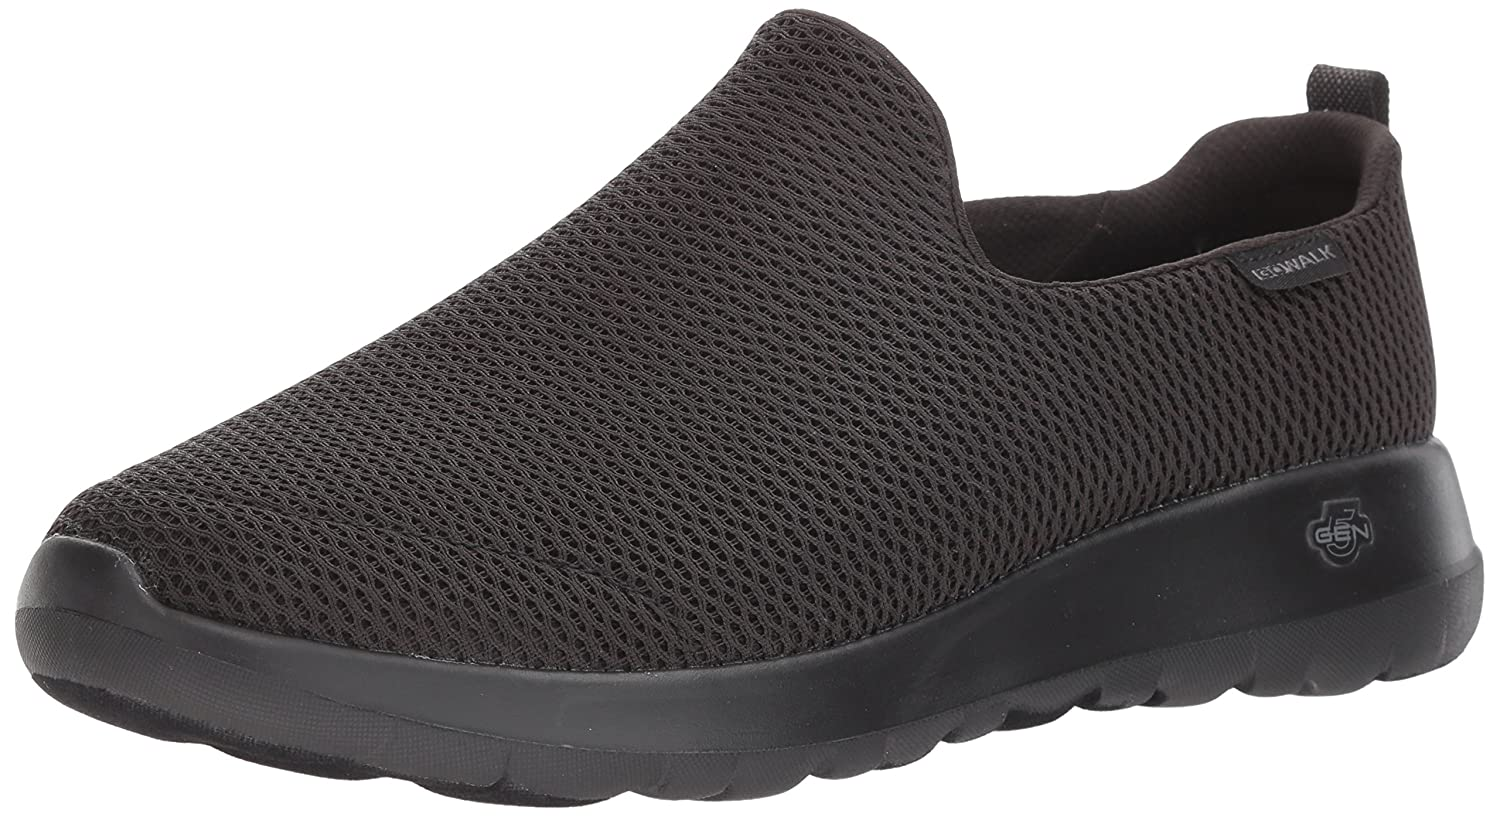 Skechers Performance Men's Go Walk Max Sneaker 9 D(M) US|Black